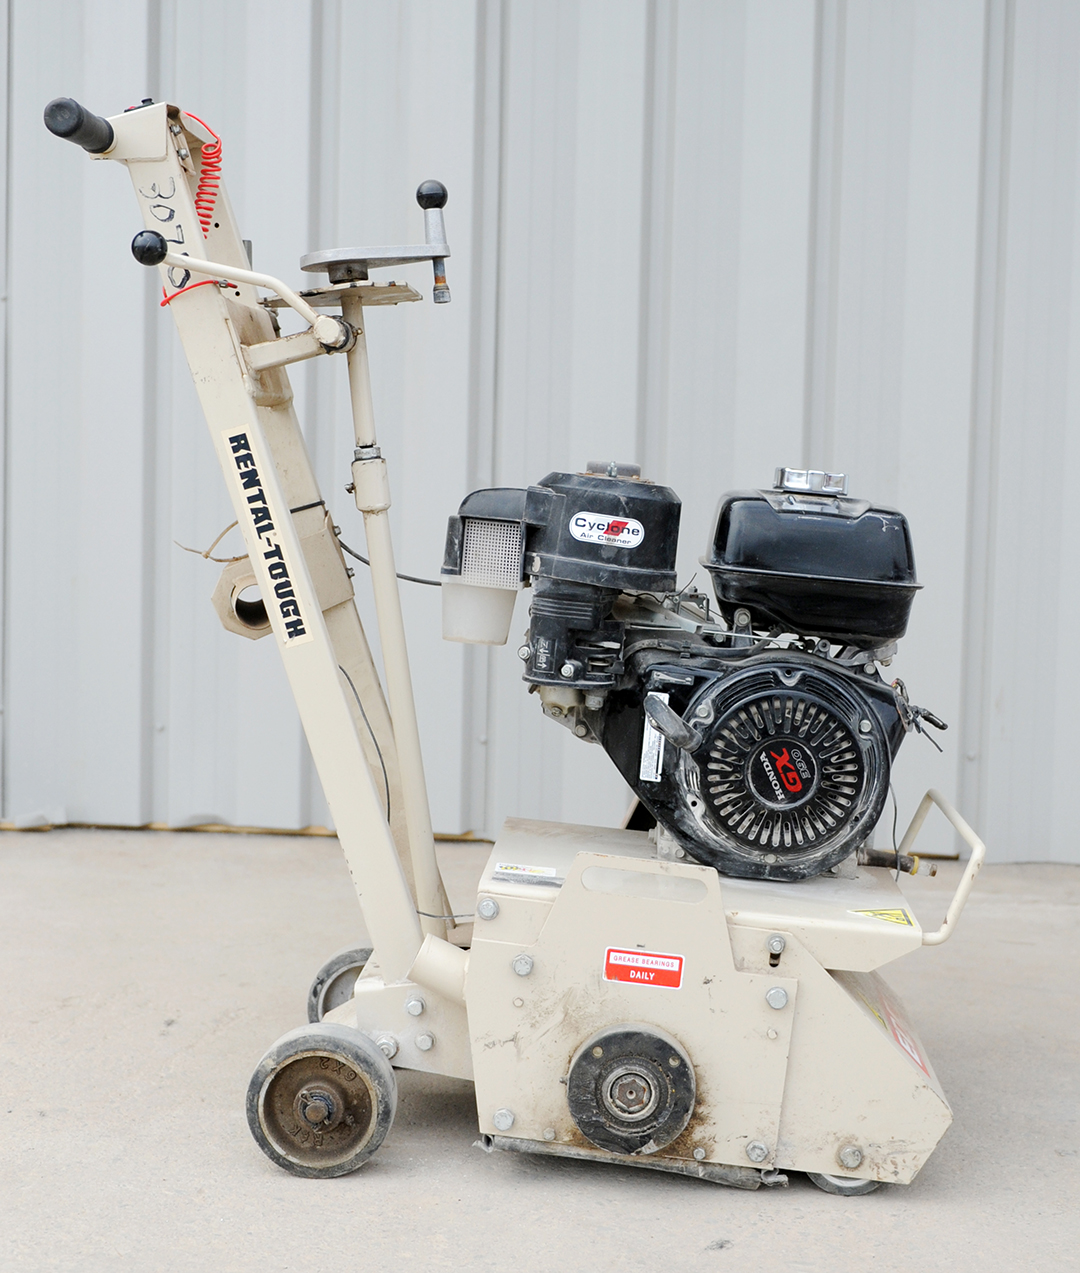 walk-behind scarifier rental